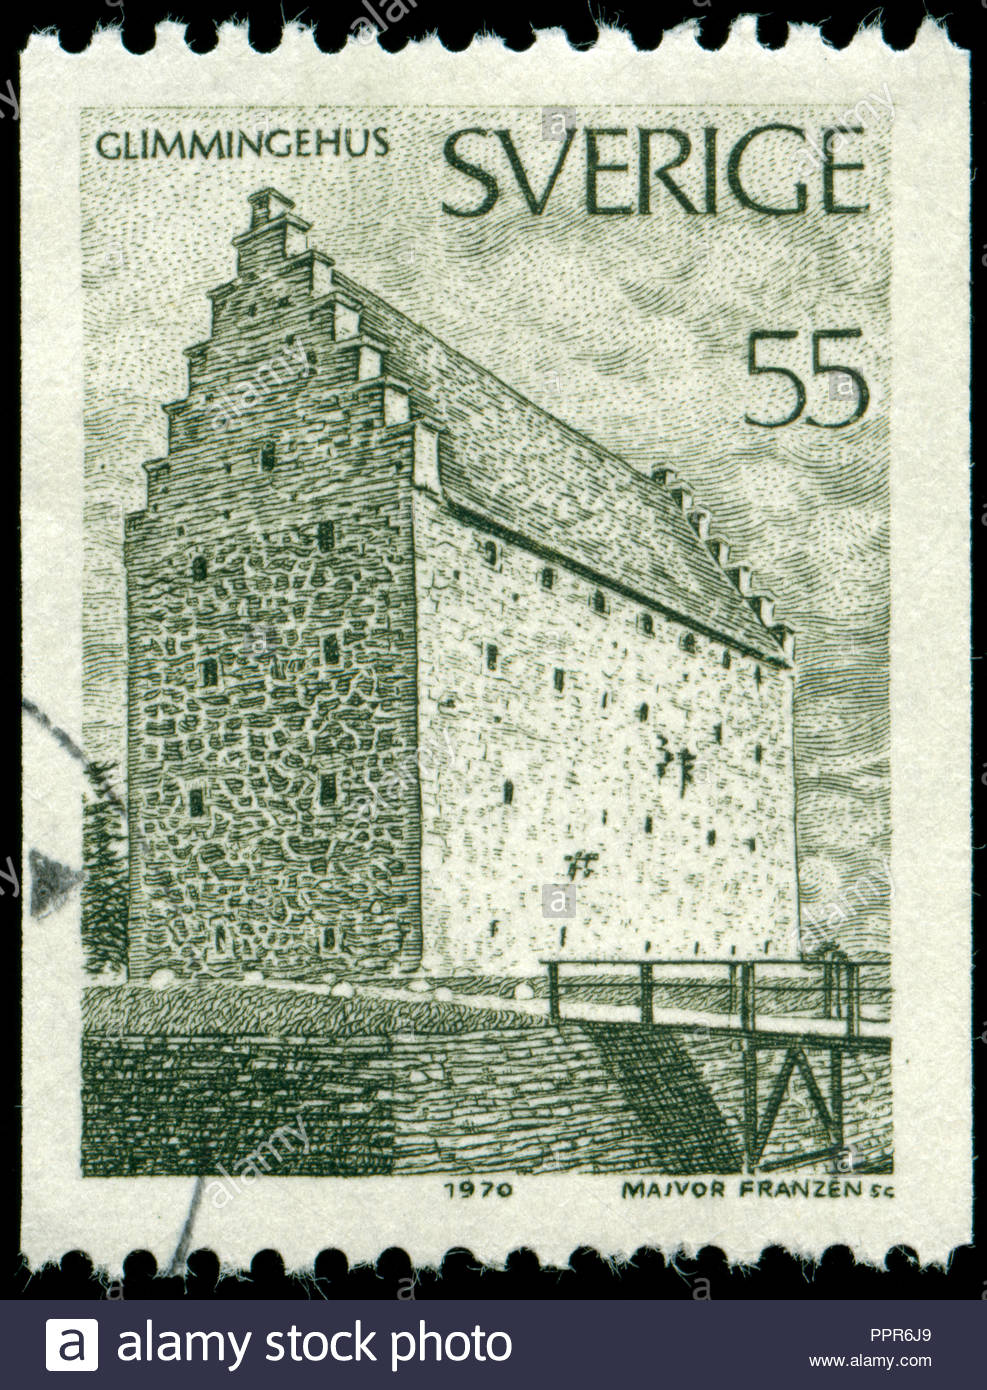 Postmarked stamp from Sweden in the Buildings series issued in 1970 - Stock Image